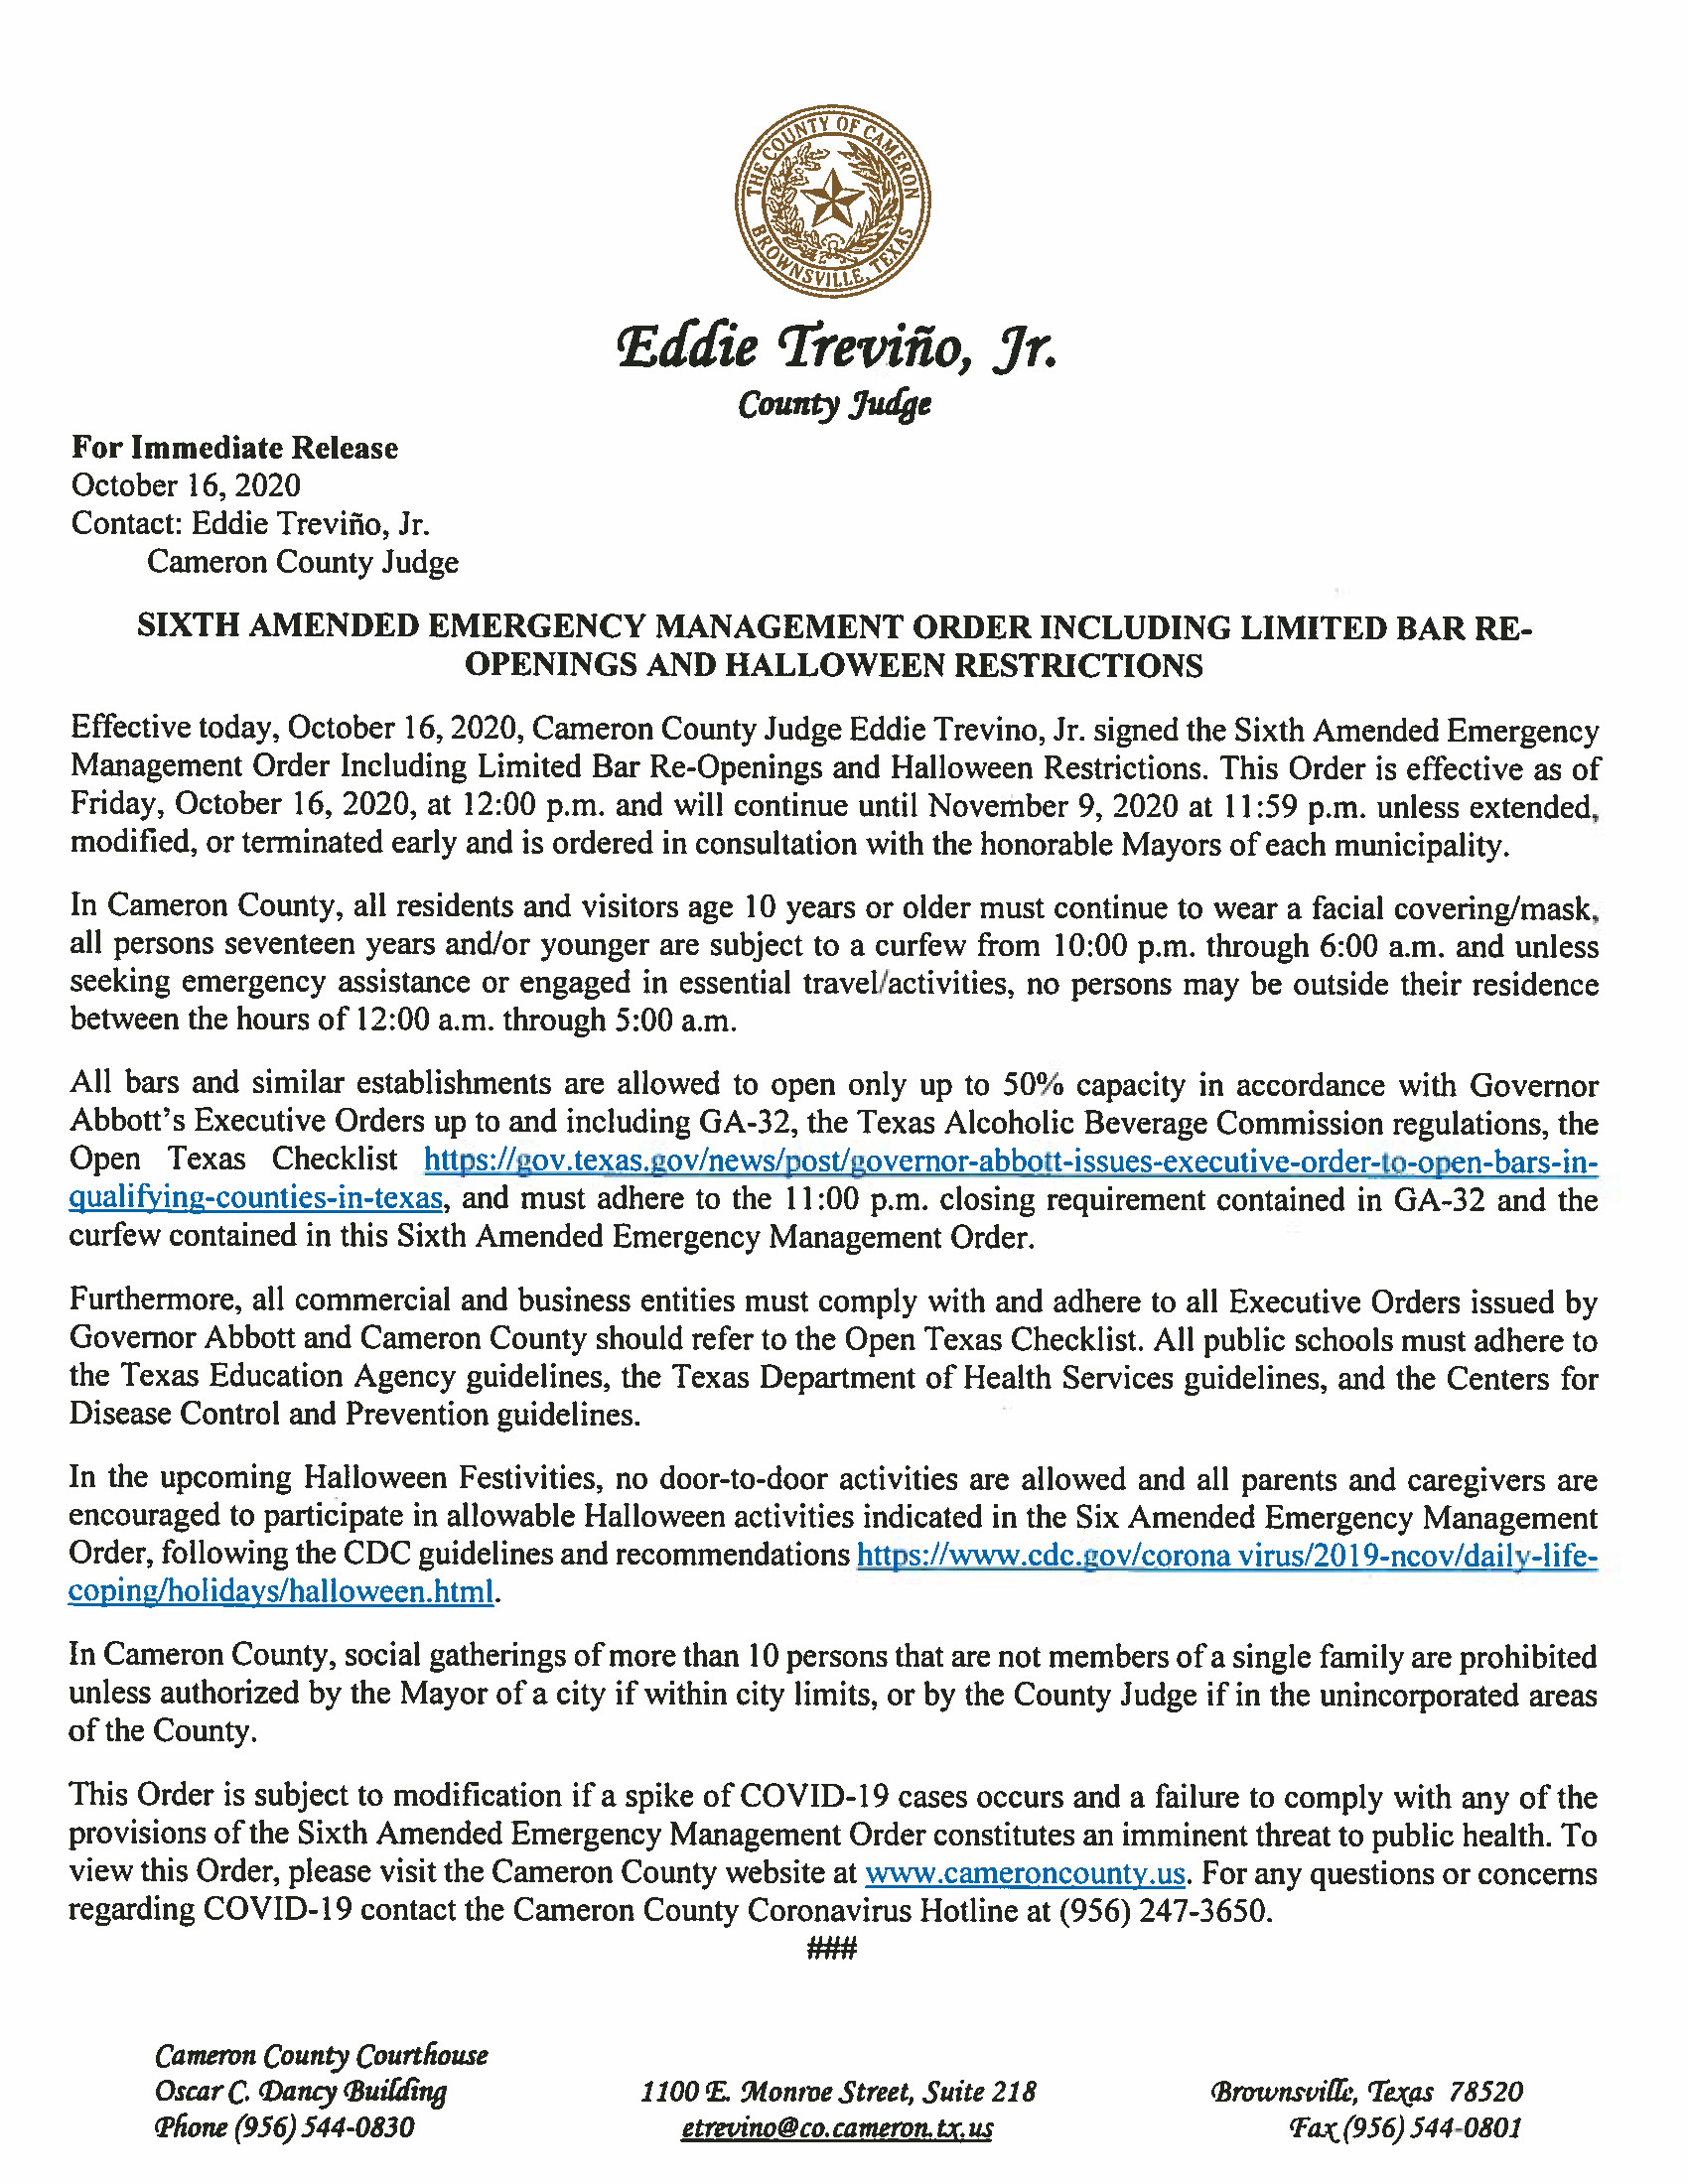 10.16.2020 PR SIxth Amended Emergency Management Order Including Limited Bar Re Openings and Halloween Restrictions - Cameron County Housing Authority Application